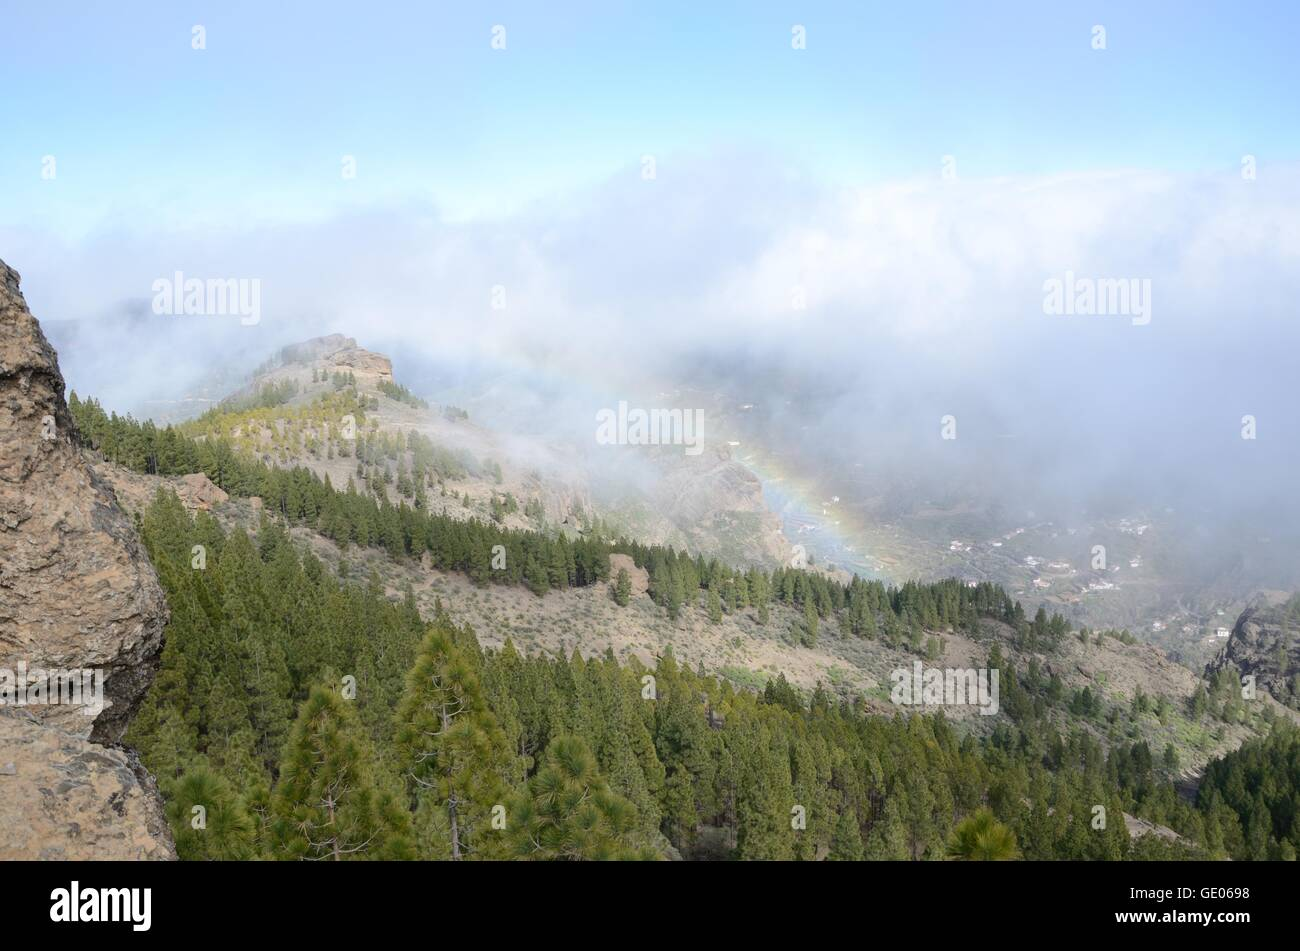 Rain bow, mountains, Gran Canaria, hiking, forest, trees, rocks, stone, panorama, clouds, mist - Stock Image